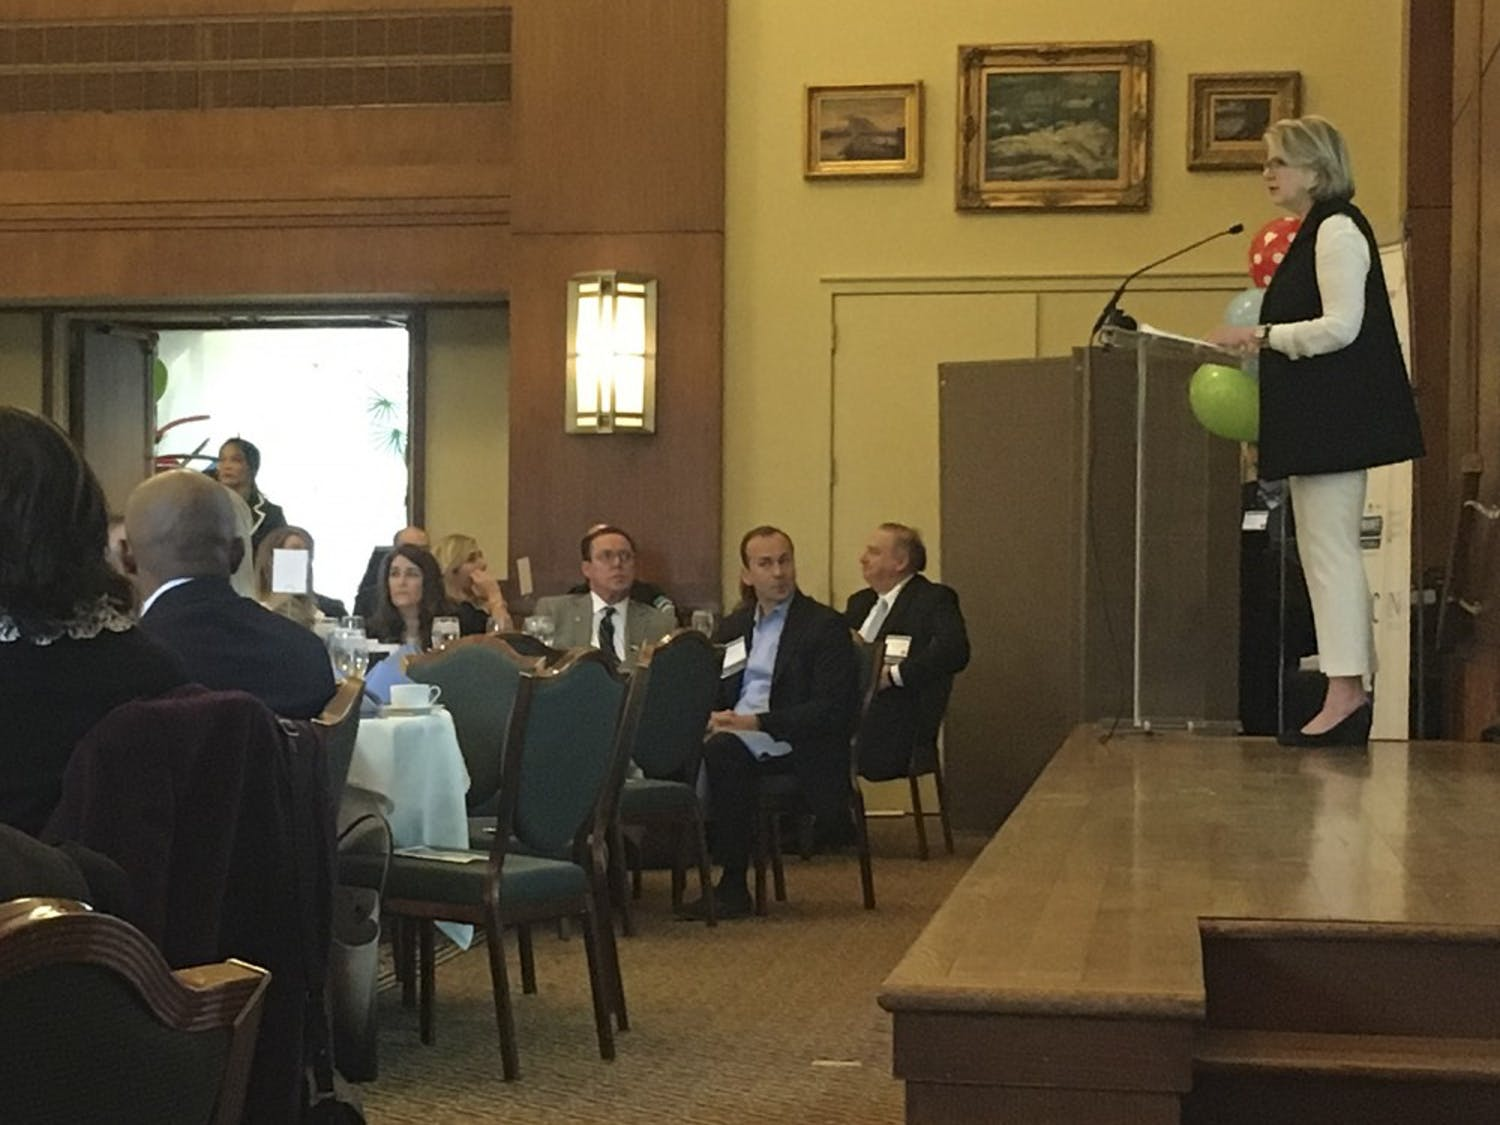 Local business leaders and community officials held their annual Chapel Hill-Carrboro Chamber of Commerce Meeting Thursdaymorning. UNC System Body President Margaret Spellings spoke at the meeting.